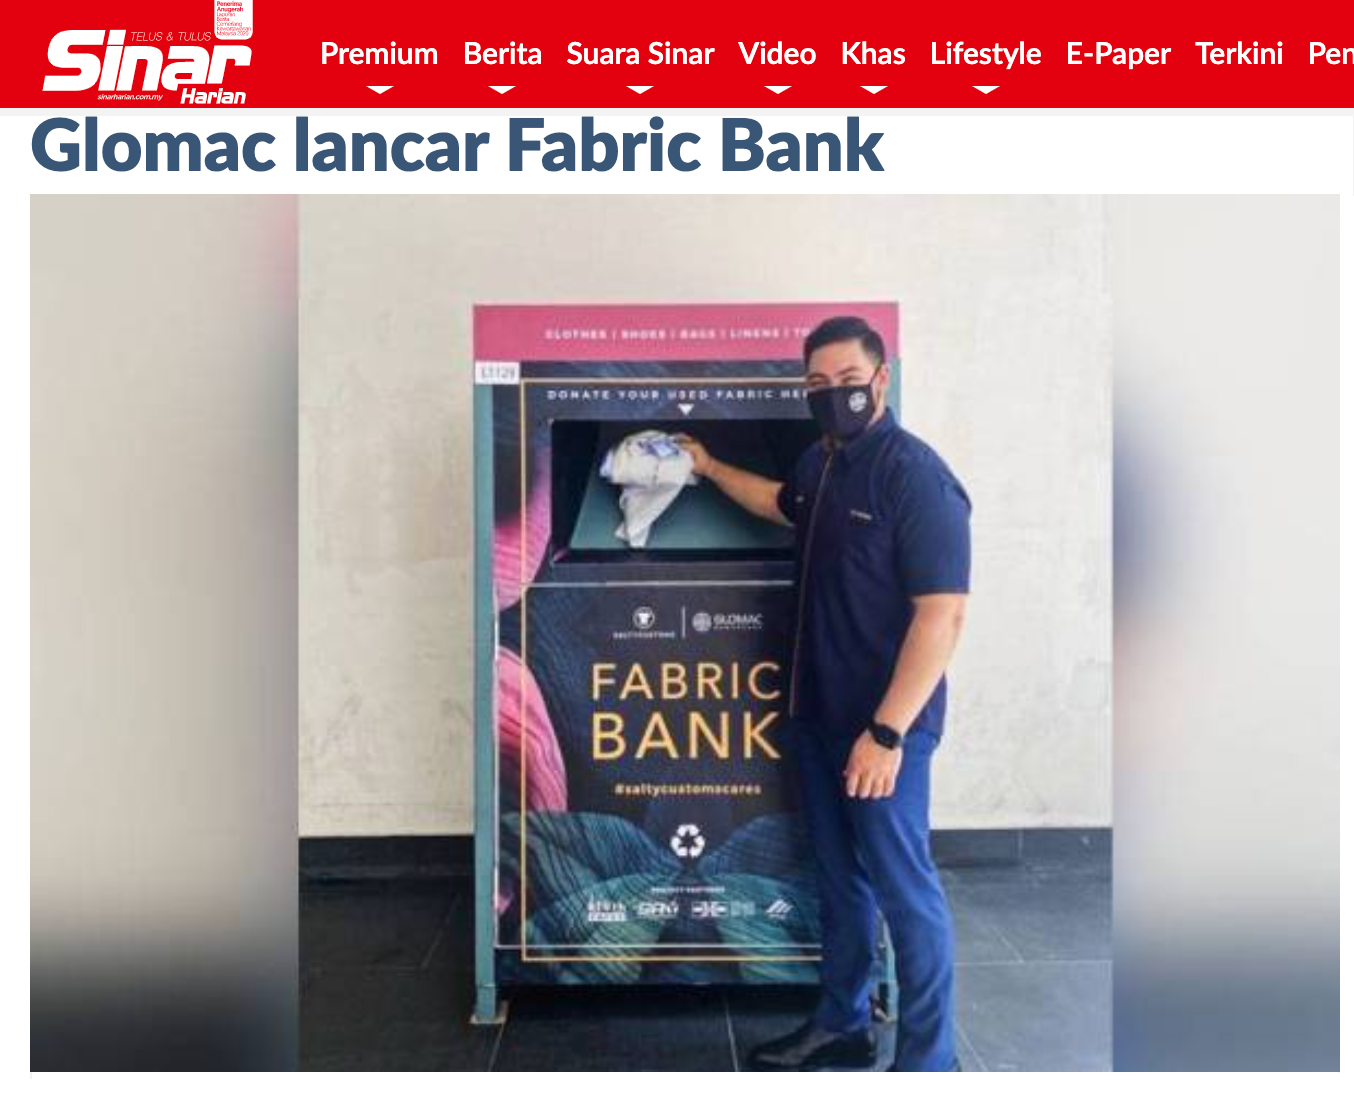 SaltyCustoms teams up with Glomac to launch a Fabric Bank